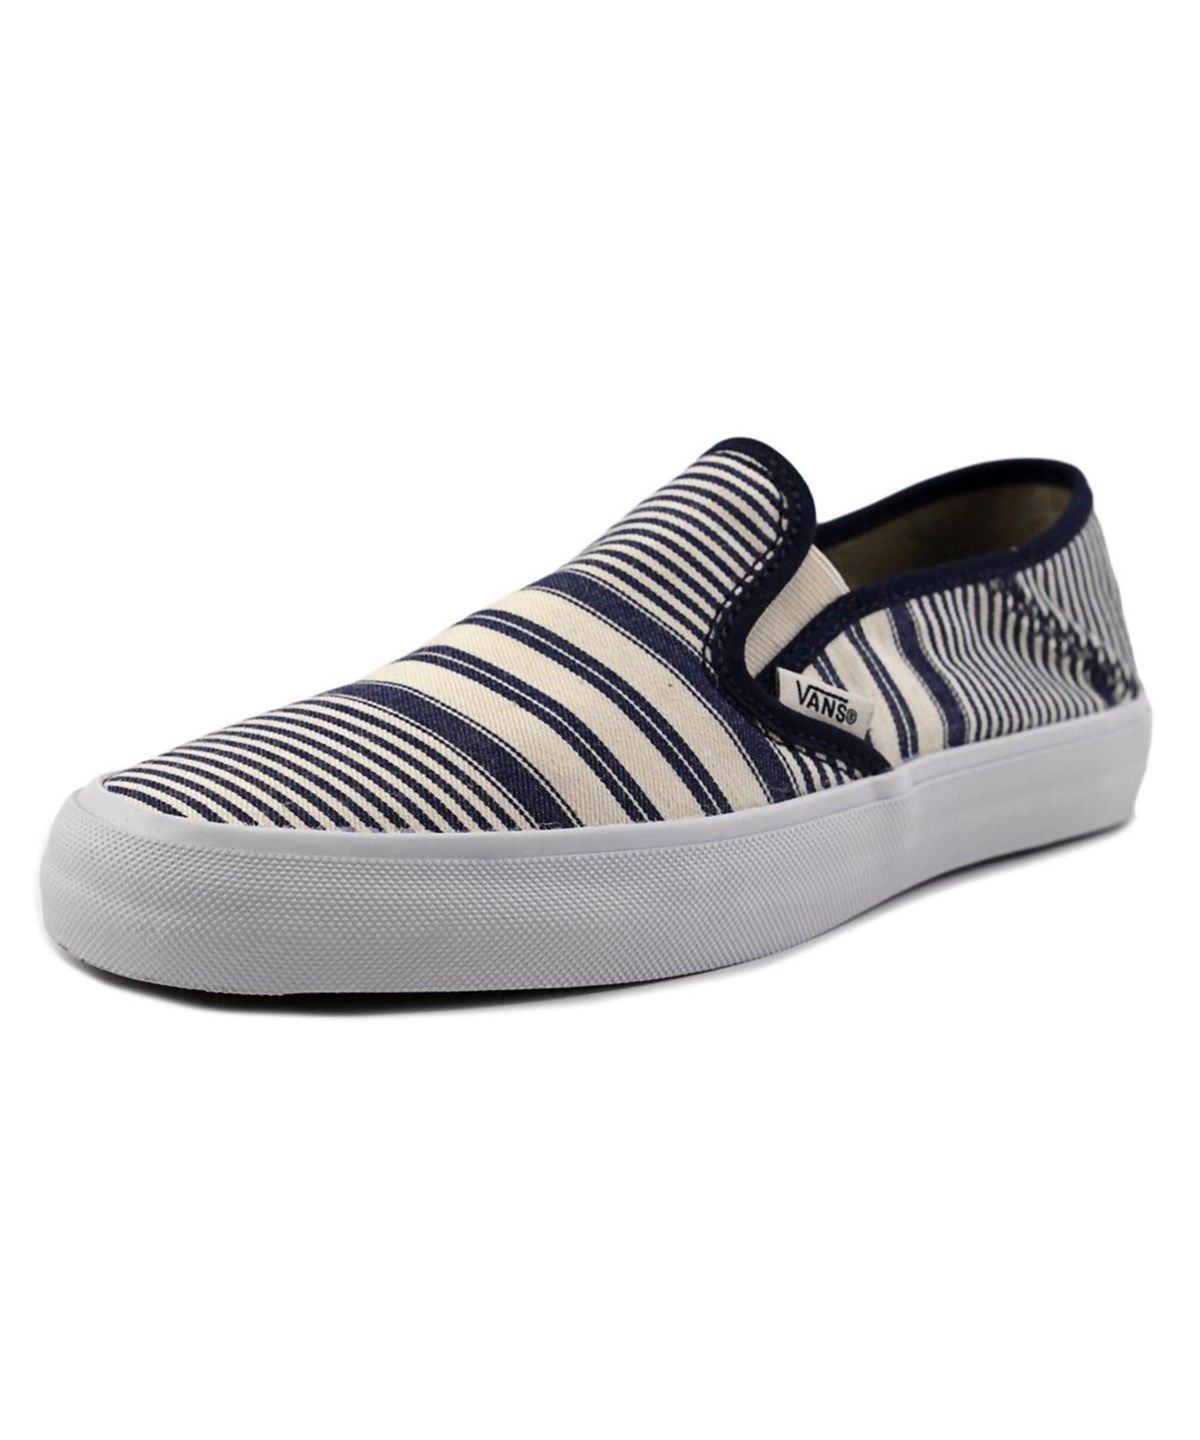 b1ddd57c14a060 VANS VANS SLIP-ON SF ROUND TOE CANVAS FLATS .  vans  shoes  loafers ...